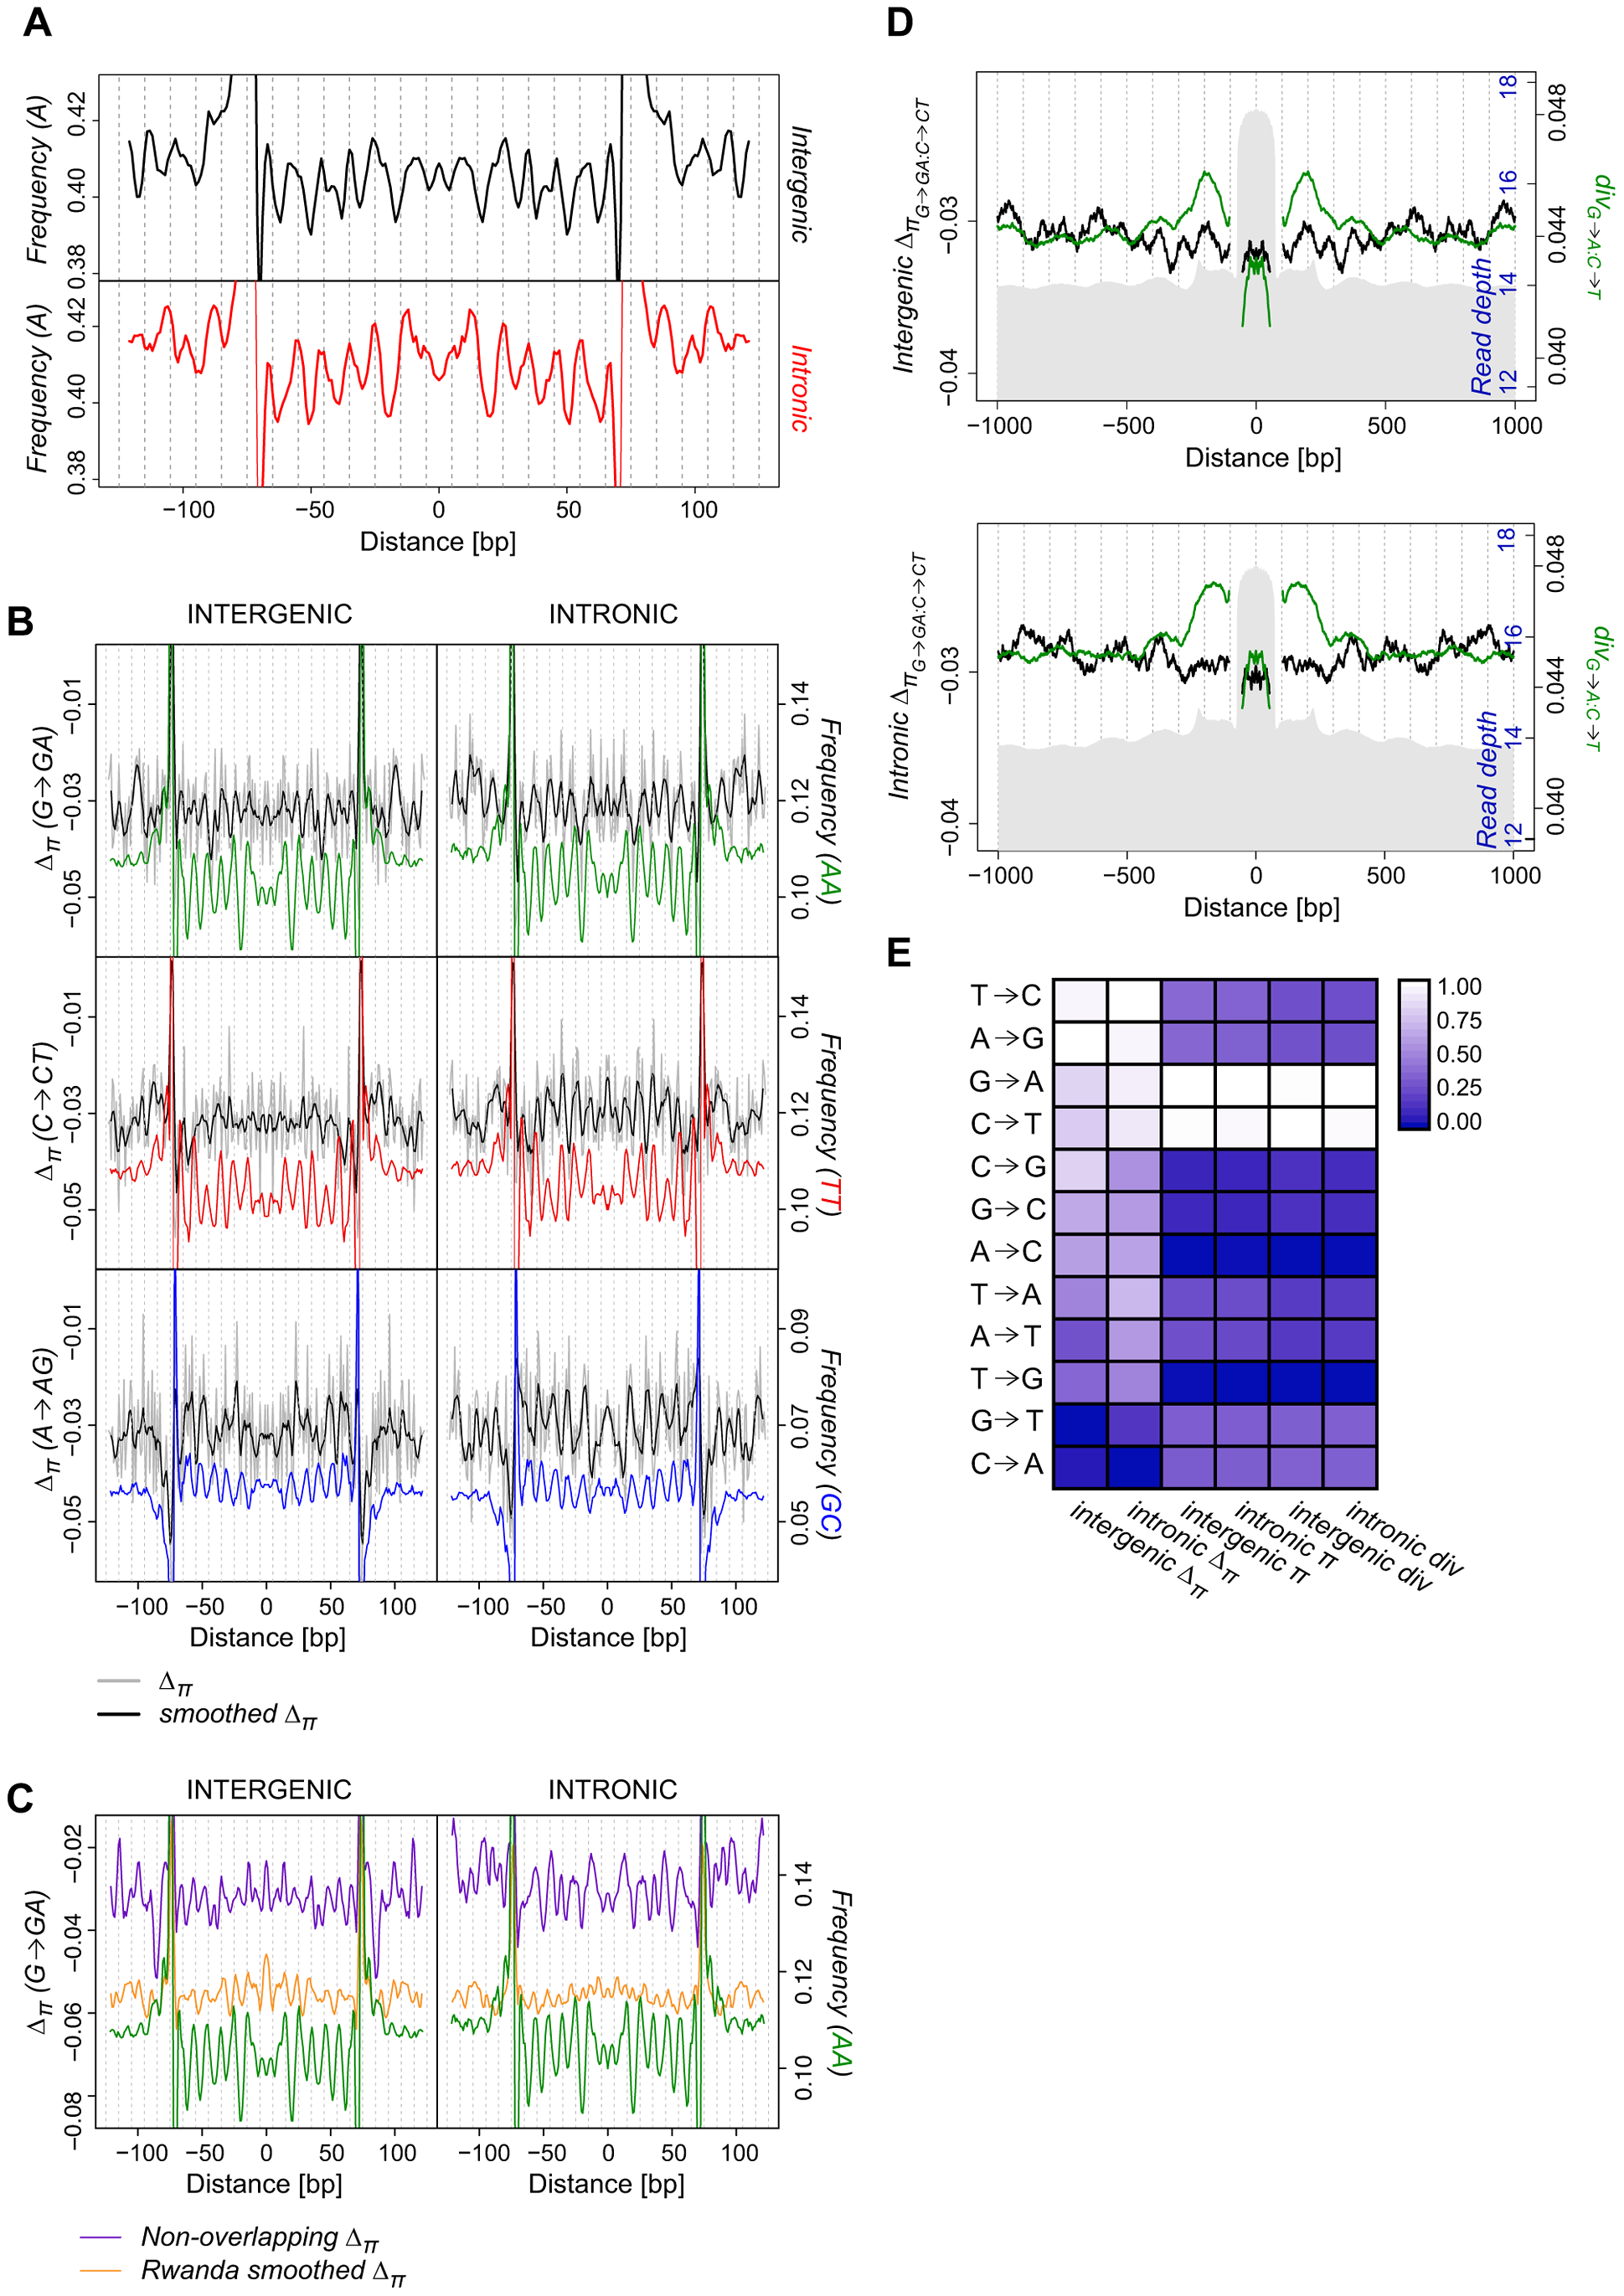 Periodicity in average SNP frequencies aligns with nucleosomal divergence and dinucleotide sequence preferences.